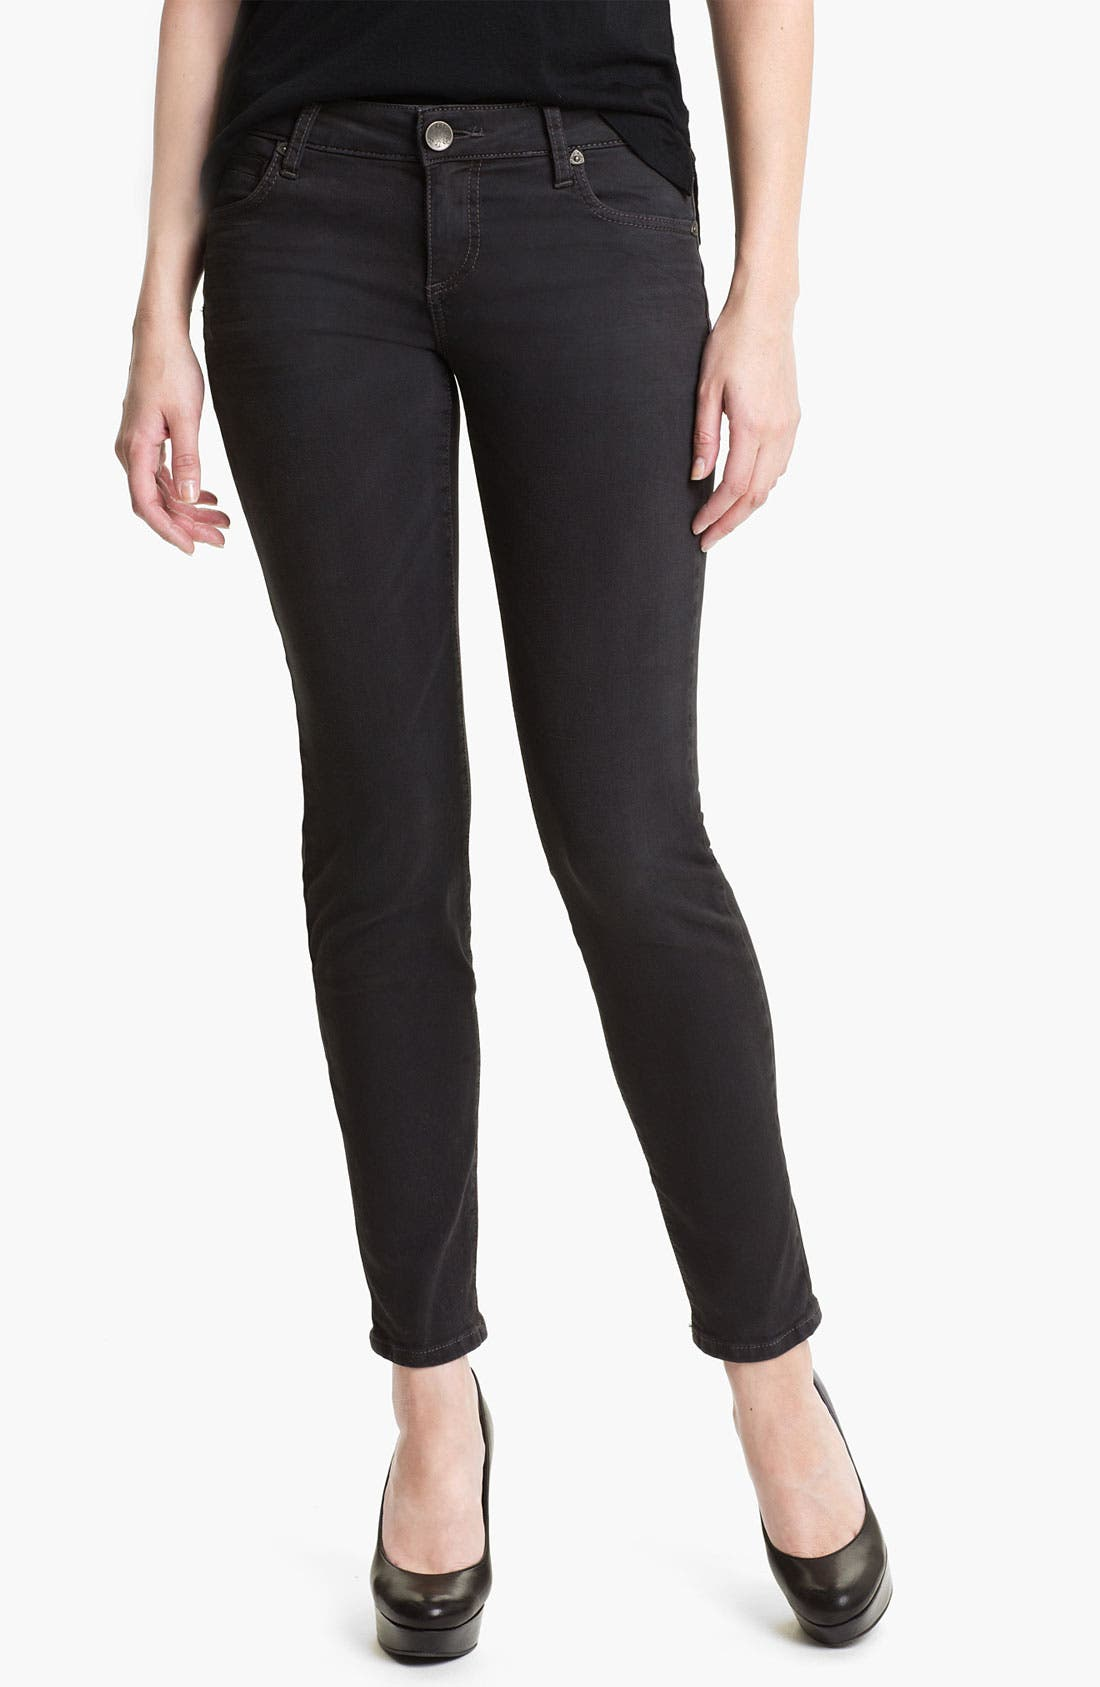 Main Image - KUT from the Kloth 'Diana' Skinny Jeans (Heavenly)